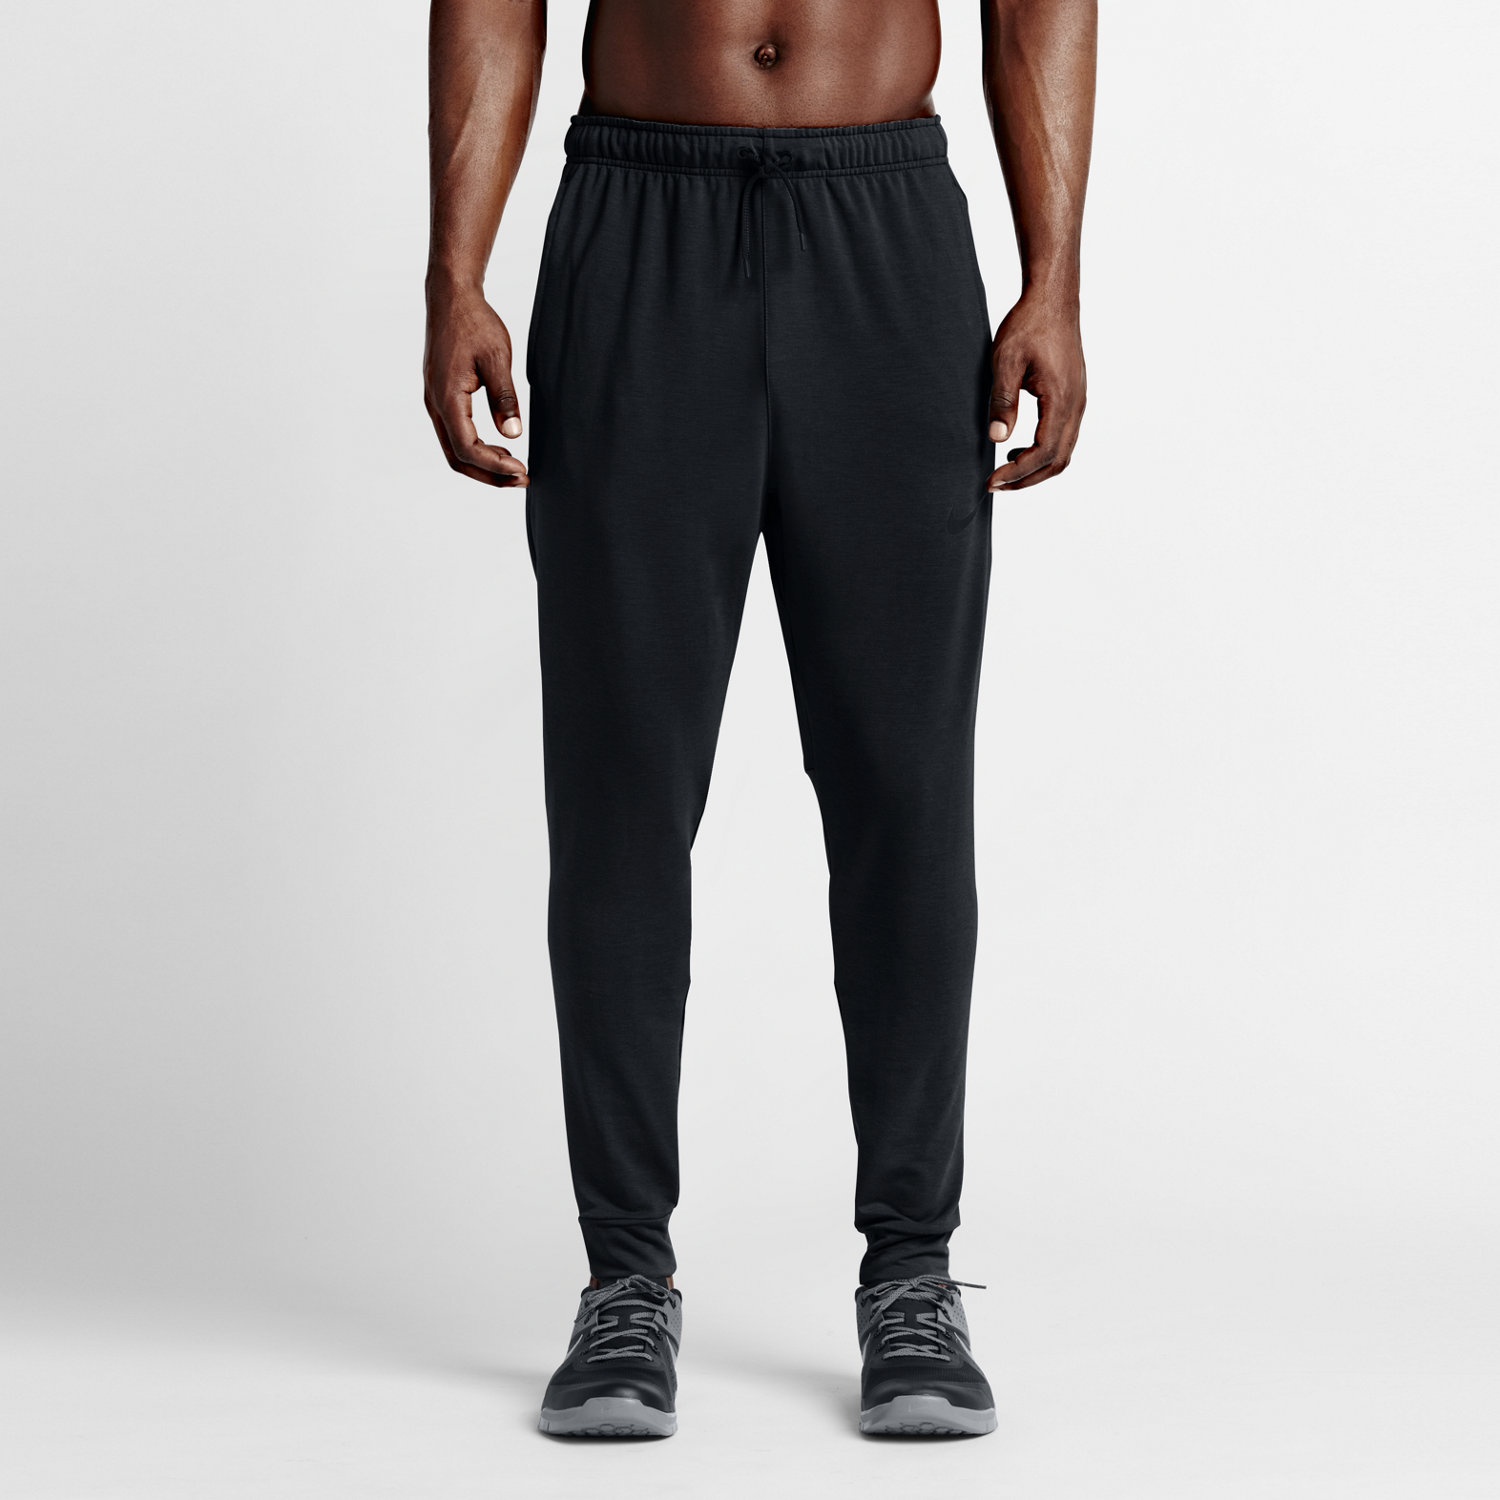 8bec72d13746 Nike Dry Men s Fleece Training Pants. Nike.com